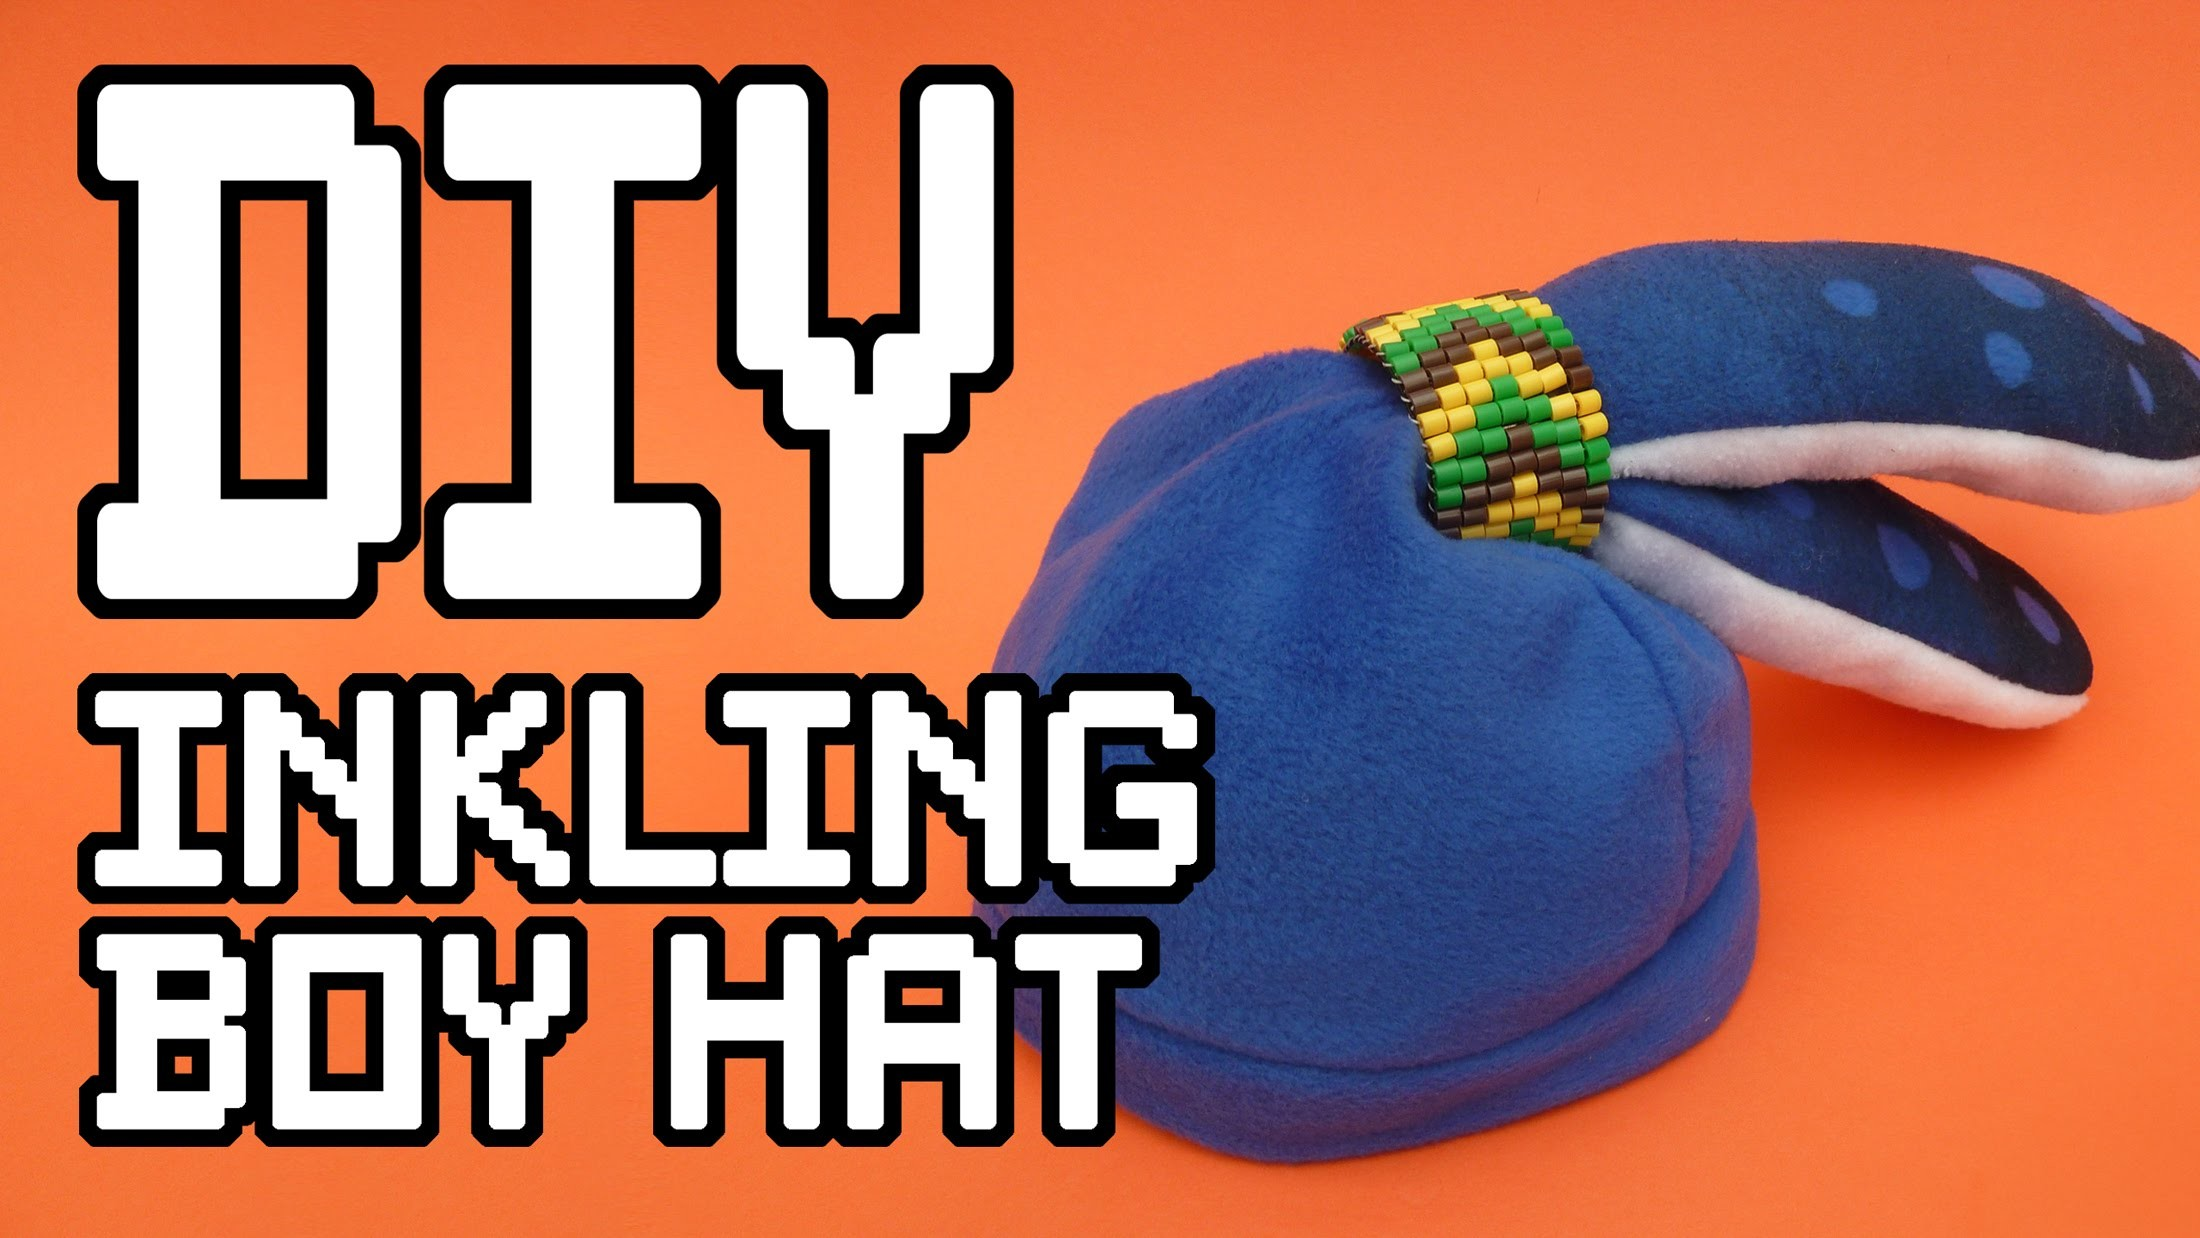 Inkling Boy Hat DIY Tutorial